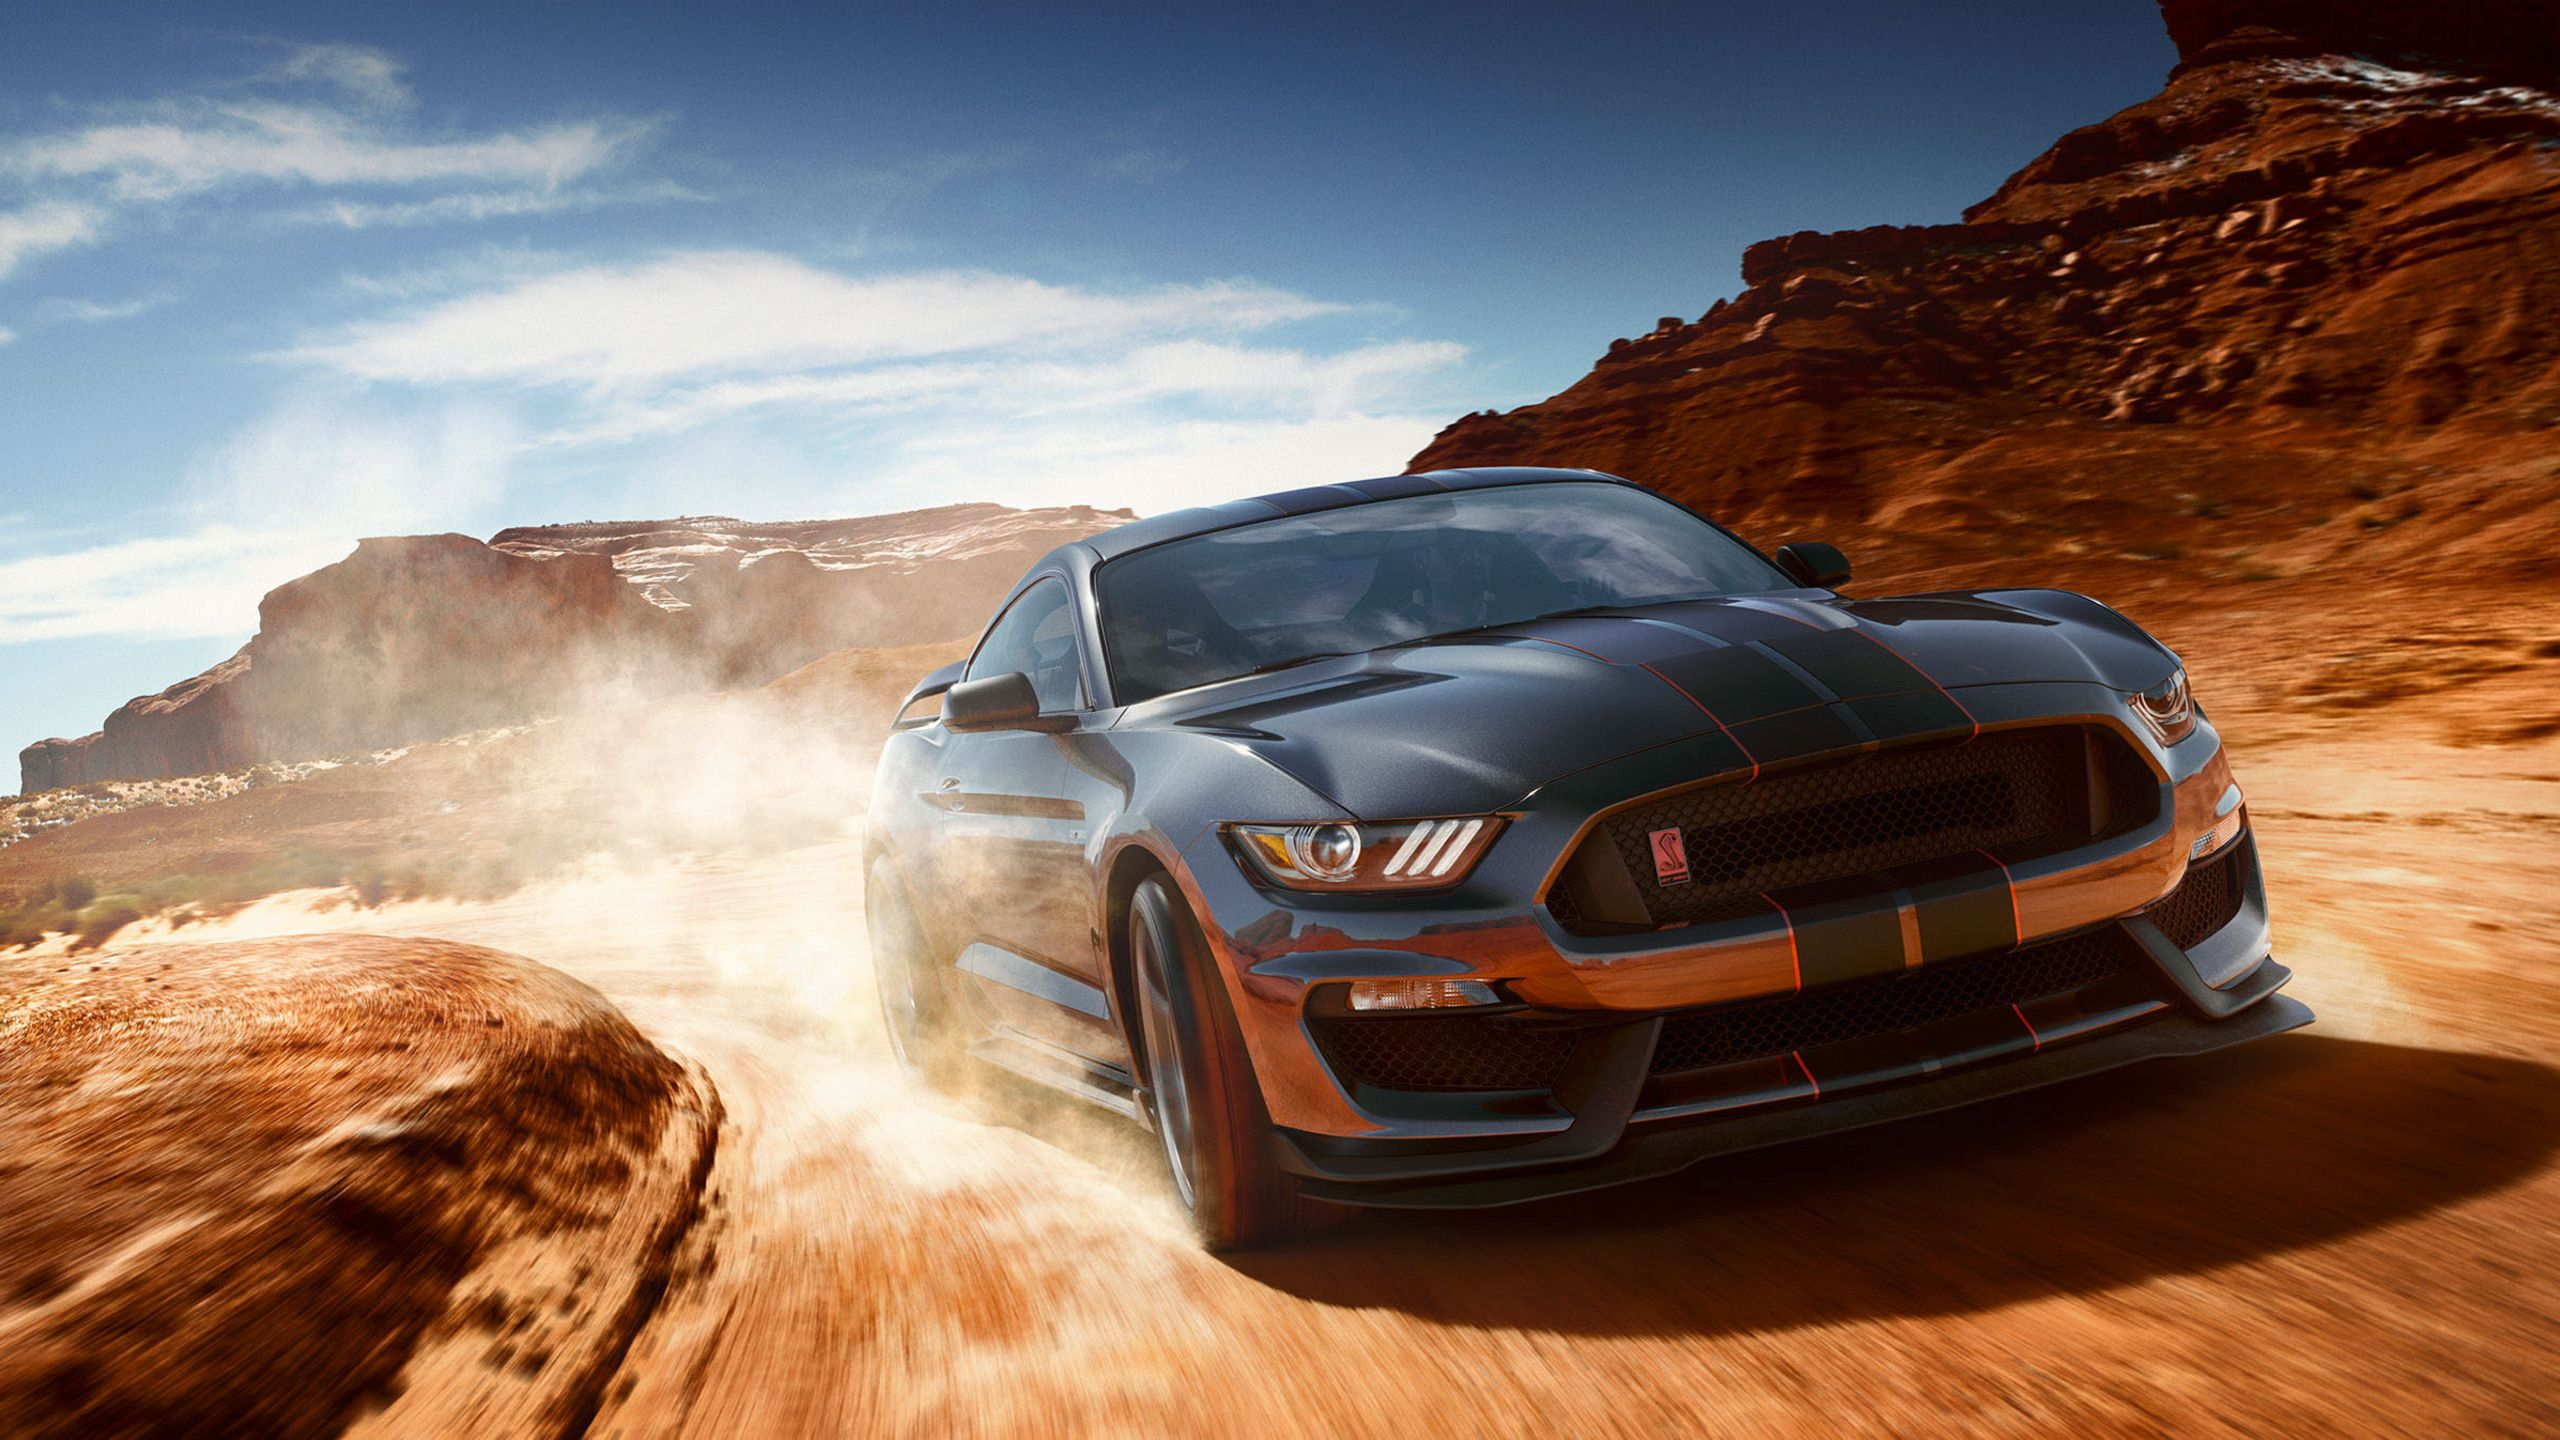 Ford Mustang Shelby Gt350 Hd Wallpapers Wallpaper Cave